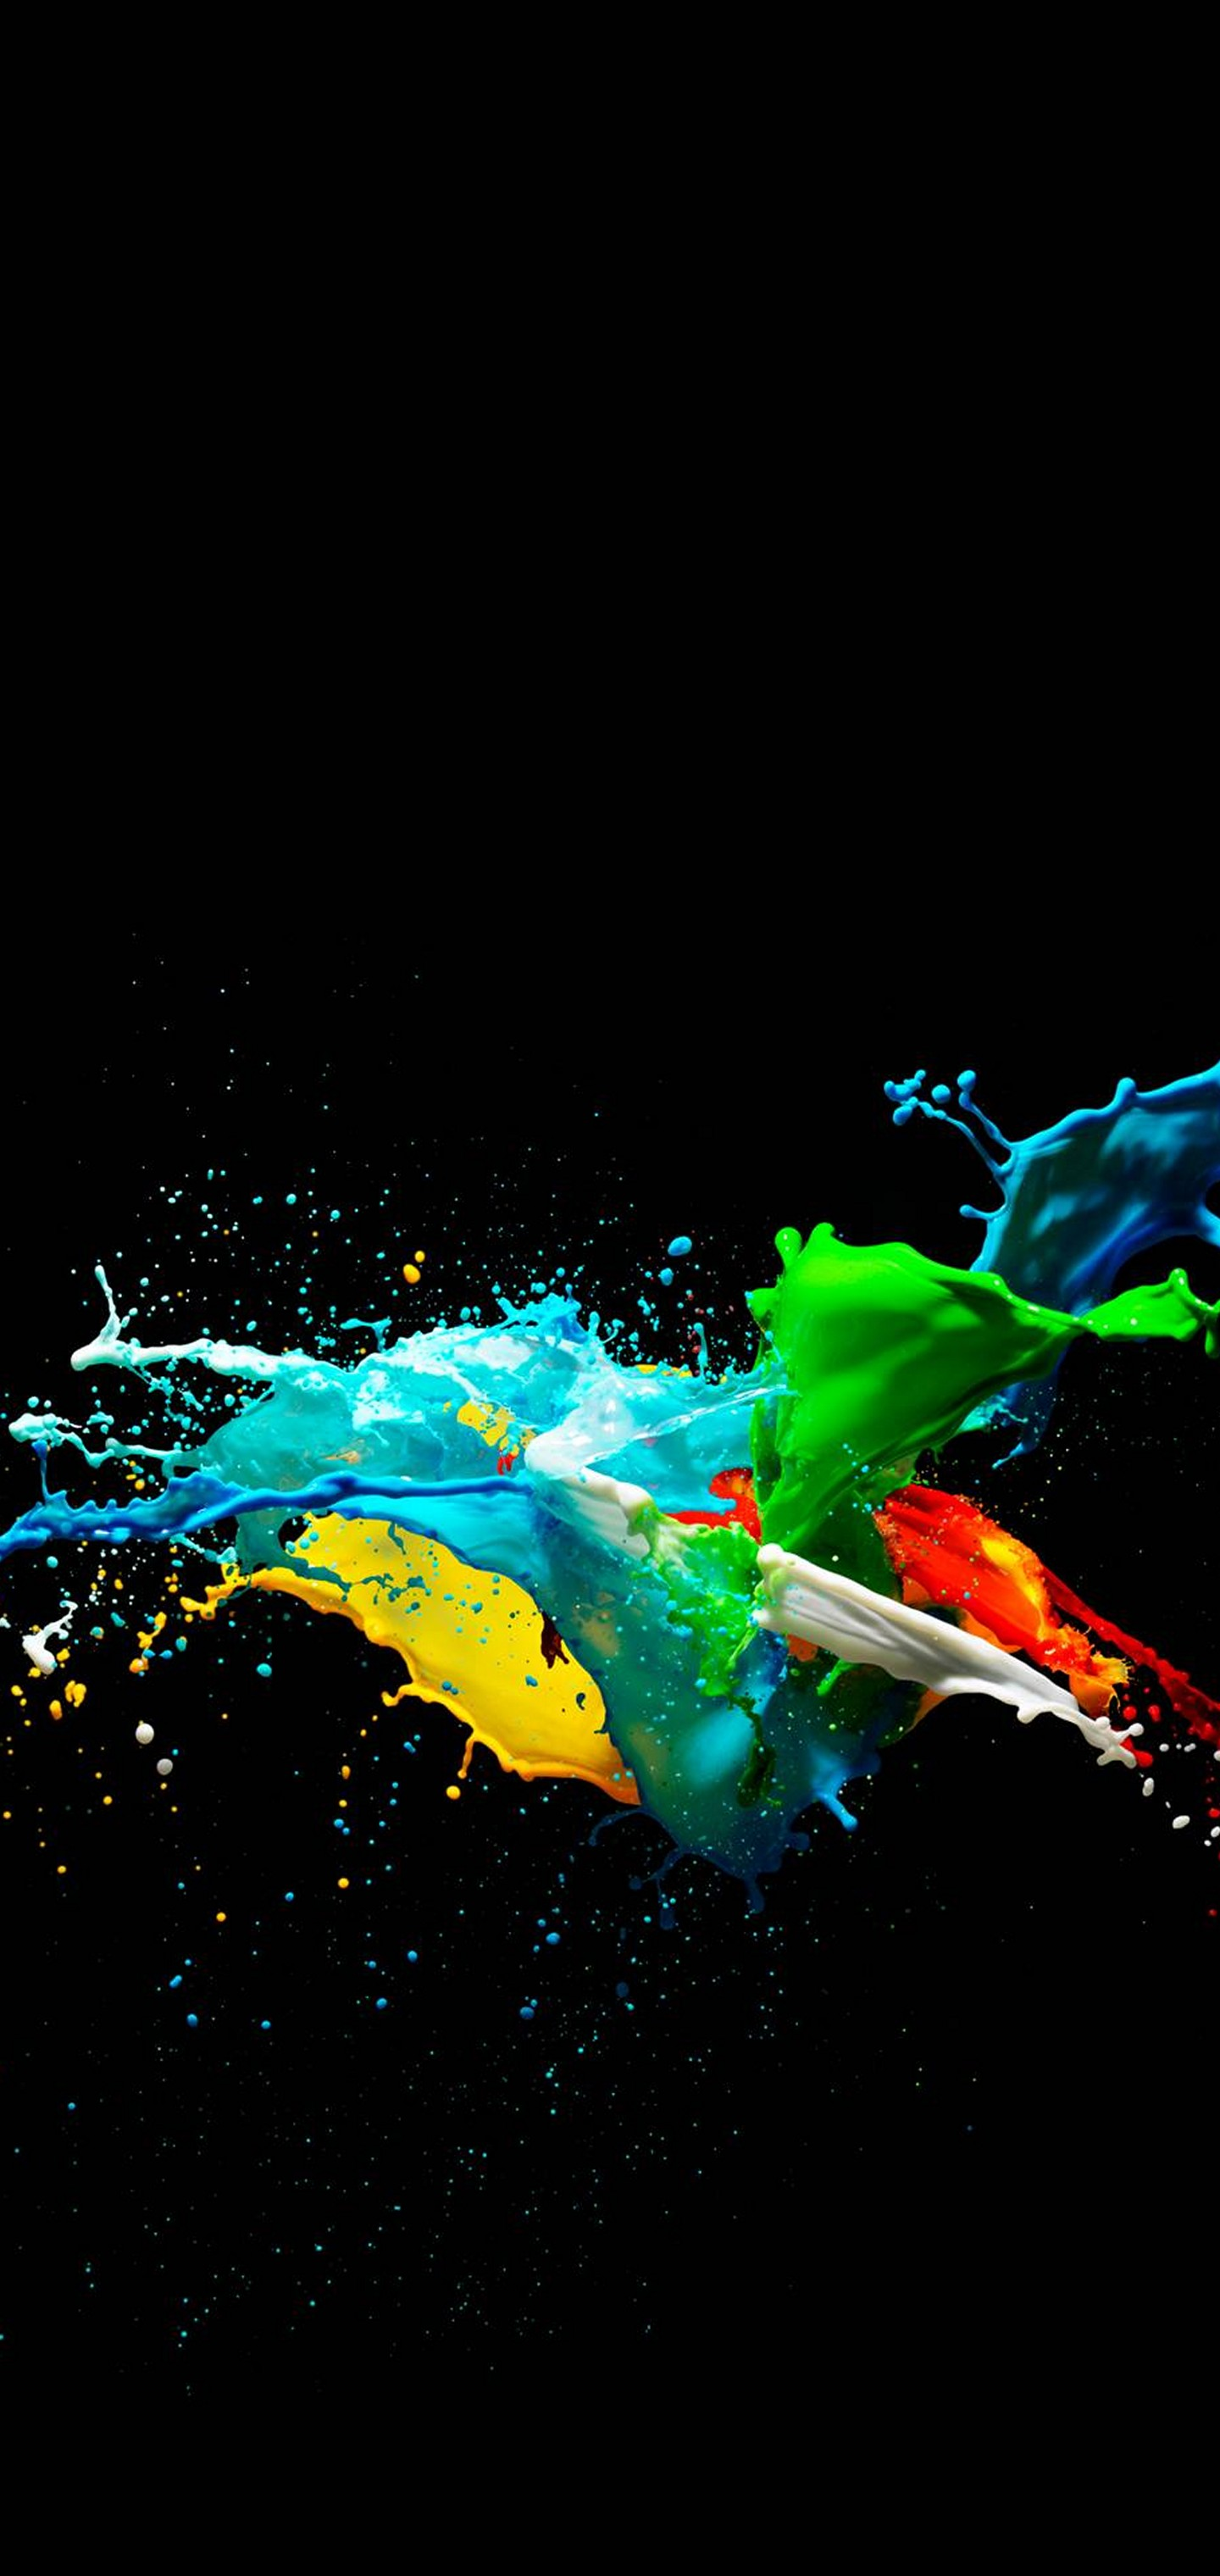 Colorful Painted Black Wallpaper - Mi A3 Wallpaper Dark - HD Wallpaper